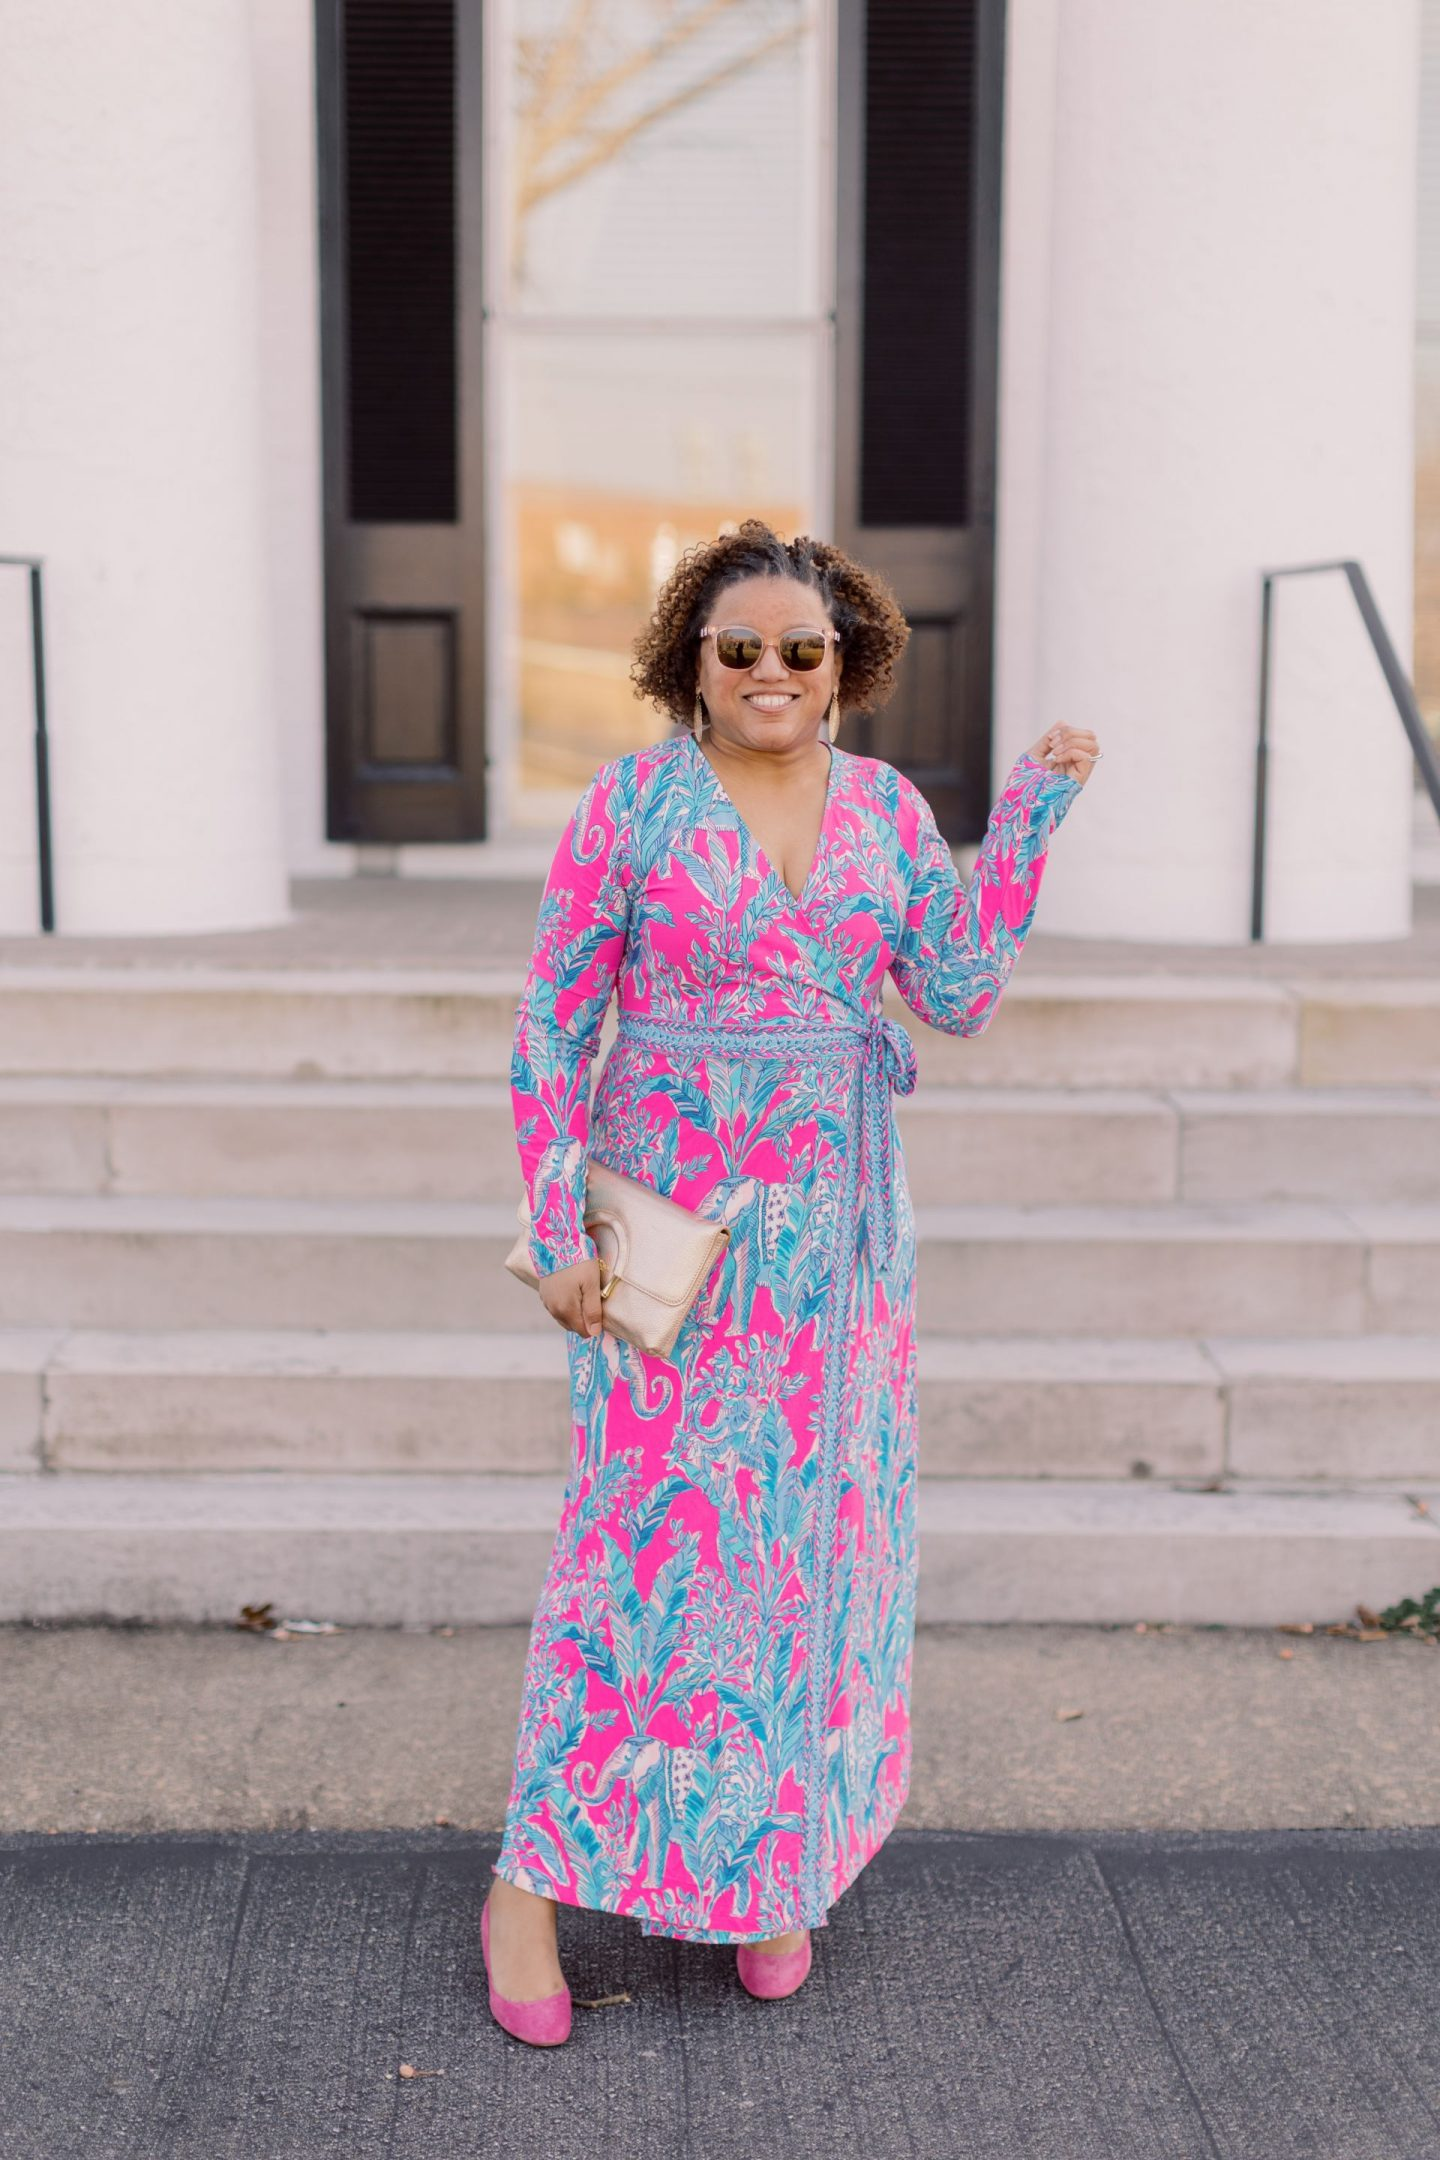 Lilly Pulitzer New Arrivals by popular Kentucky fashion blog, Really Rynetta: image of a woman wearing a Lilly Pulitzer Marseilles wrap dress.